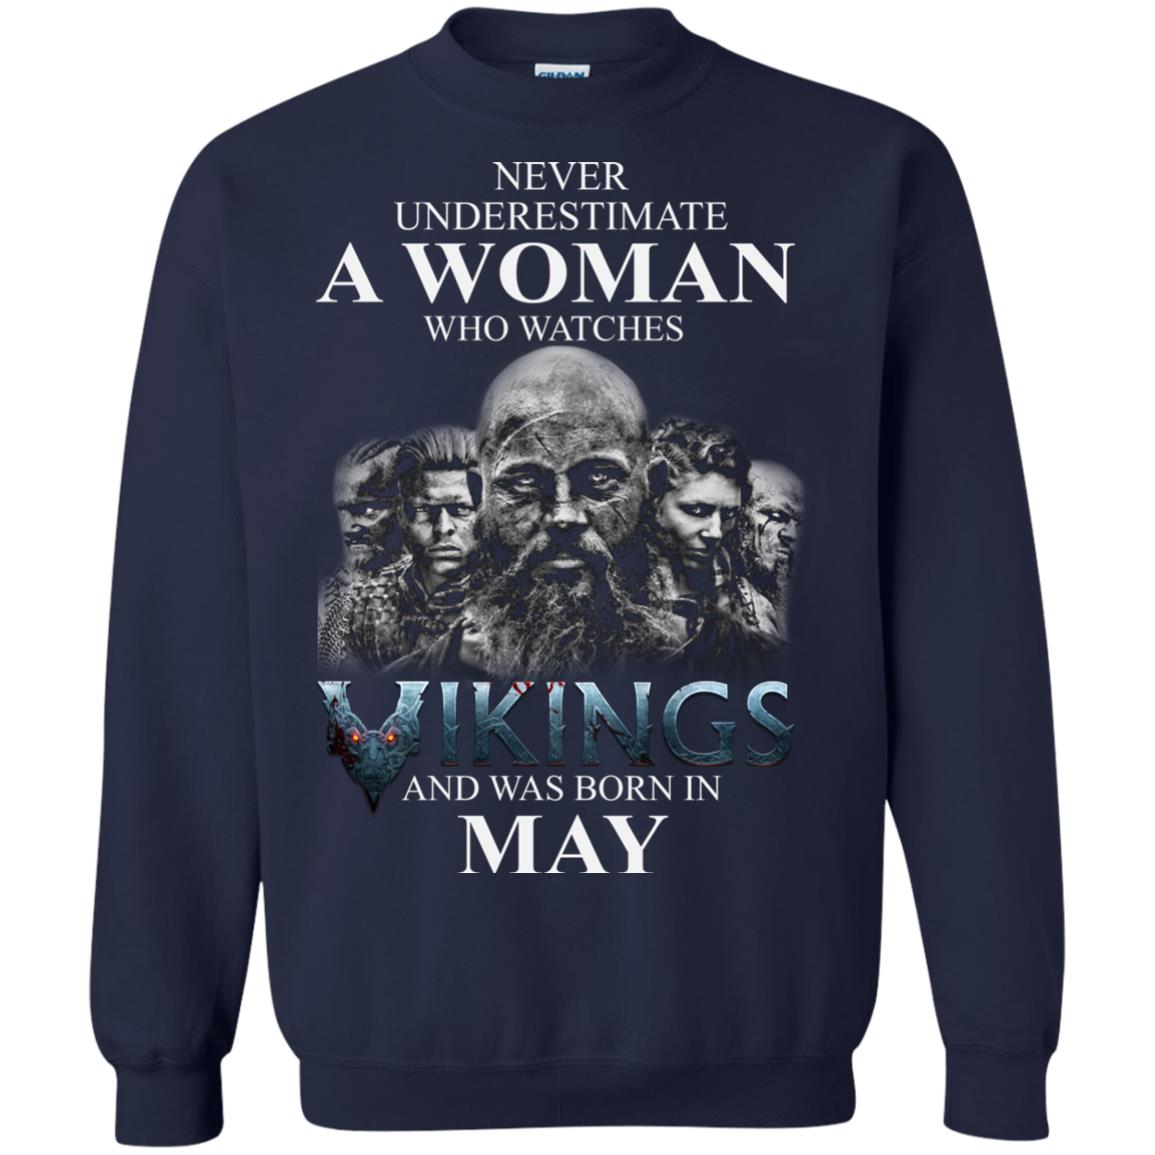 image 1310 - Never Underestimate A woman who watches Vikings and was born in May shirt